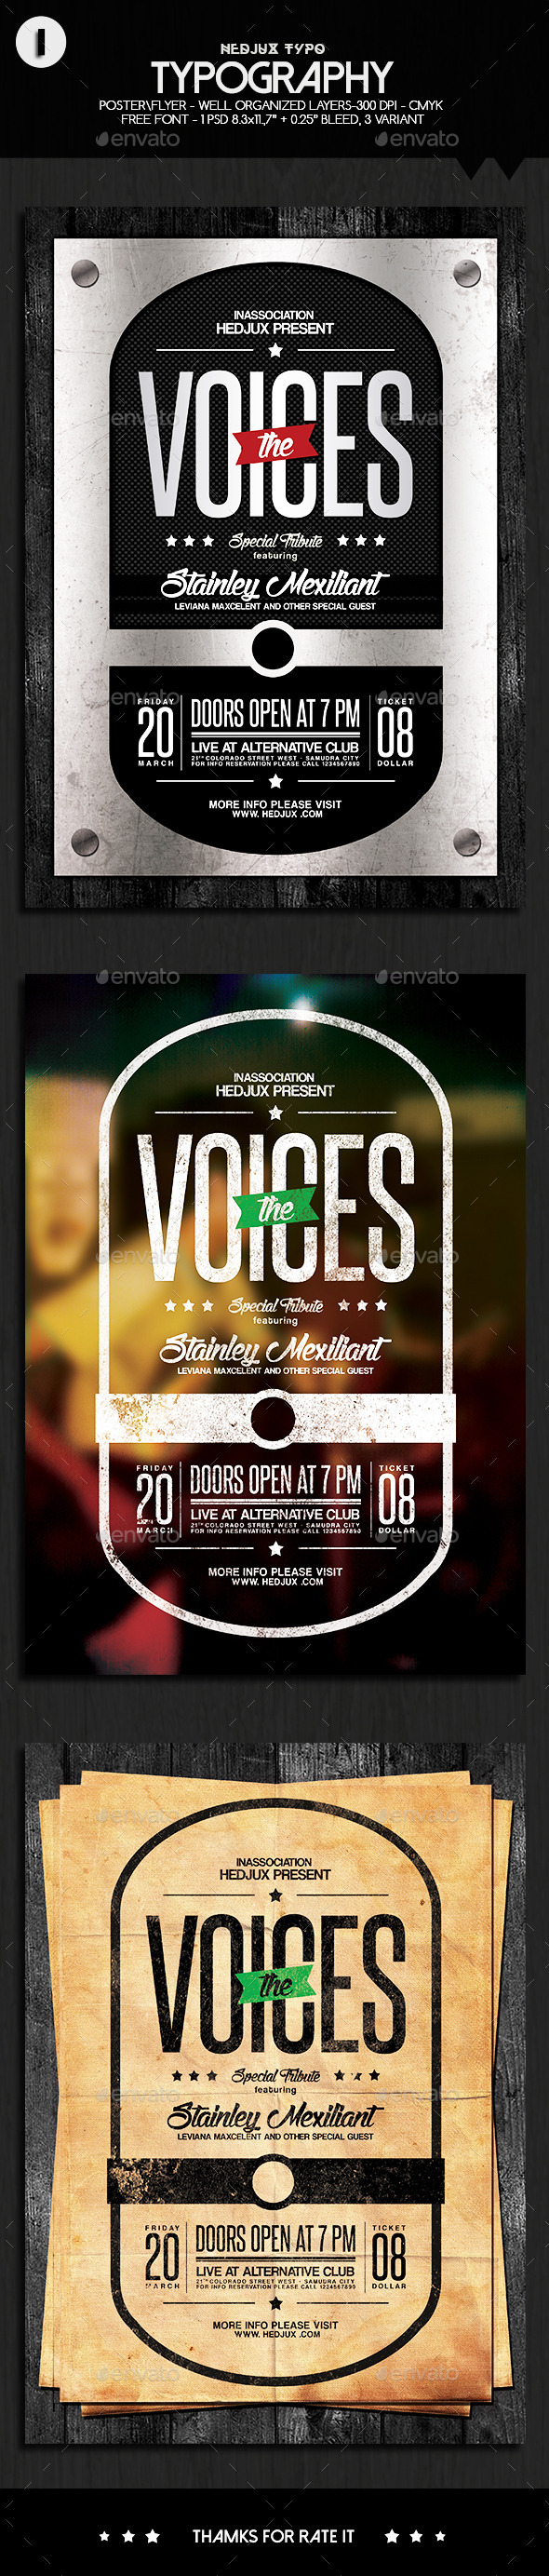 GraphicRiver Typography Voices Flyer 10870697